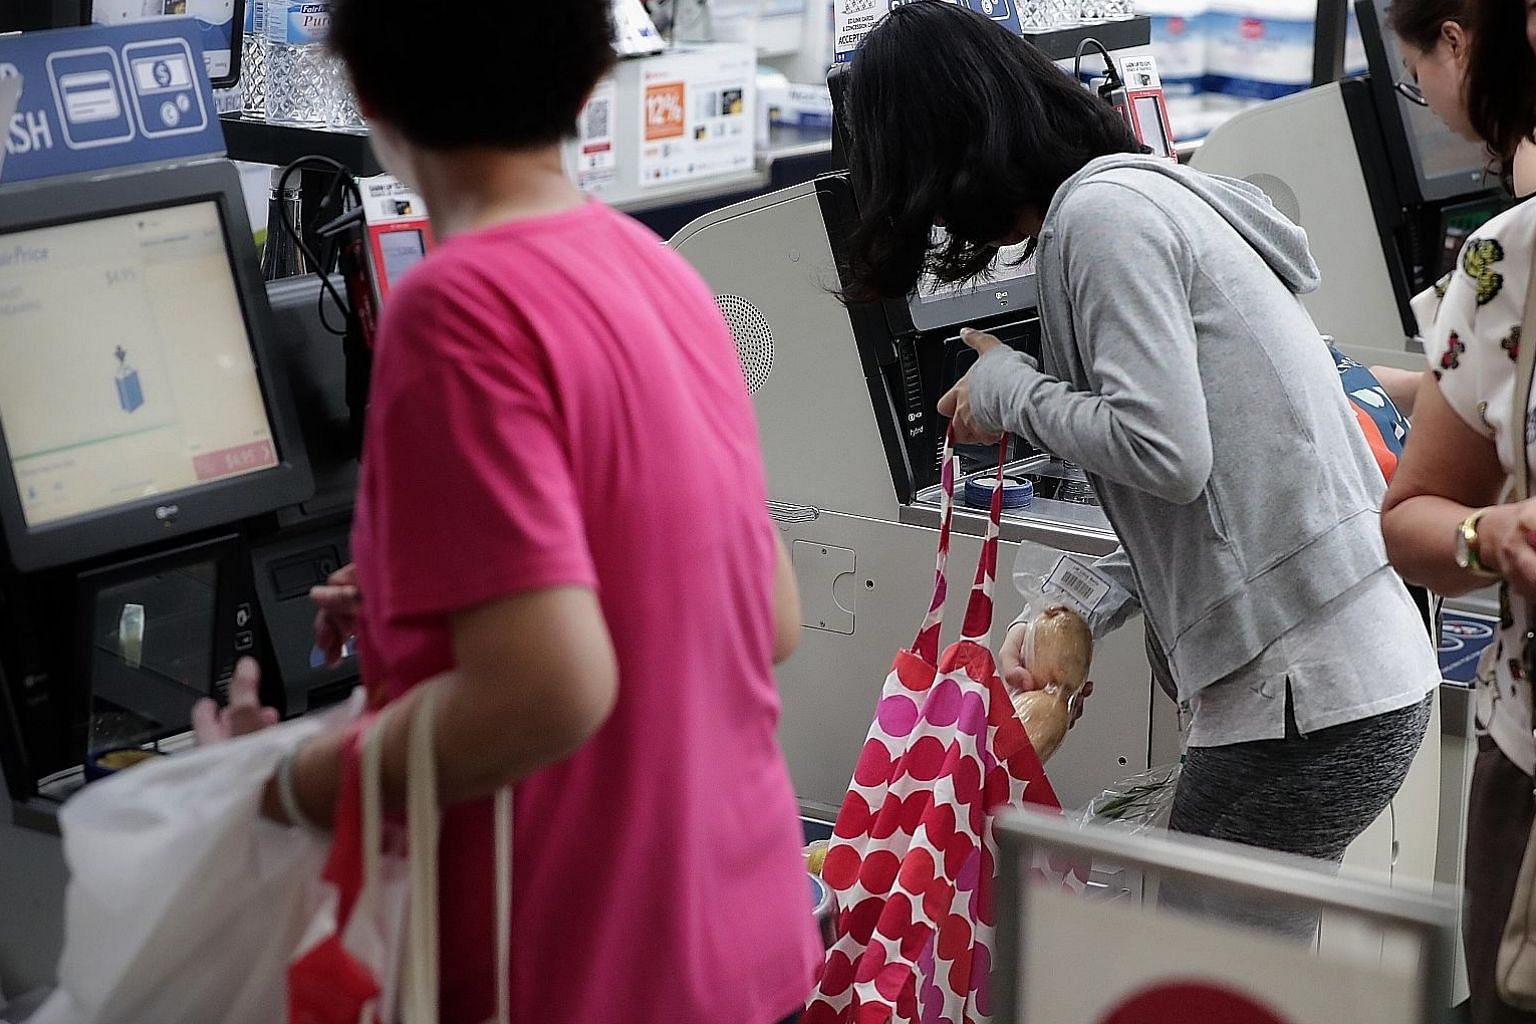 """Under FairPrice's extended """"no plastic bag"""" drive, shoppers are urged to use their own bags. The charge for plastic bags at the outlets involved in the campaign is 10 cents or 20 cents for each transaction."""